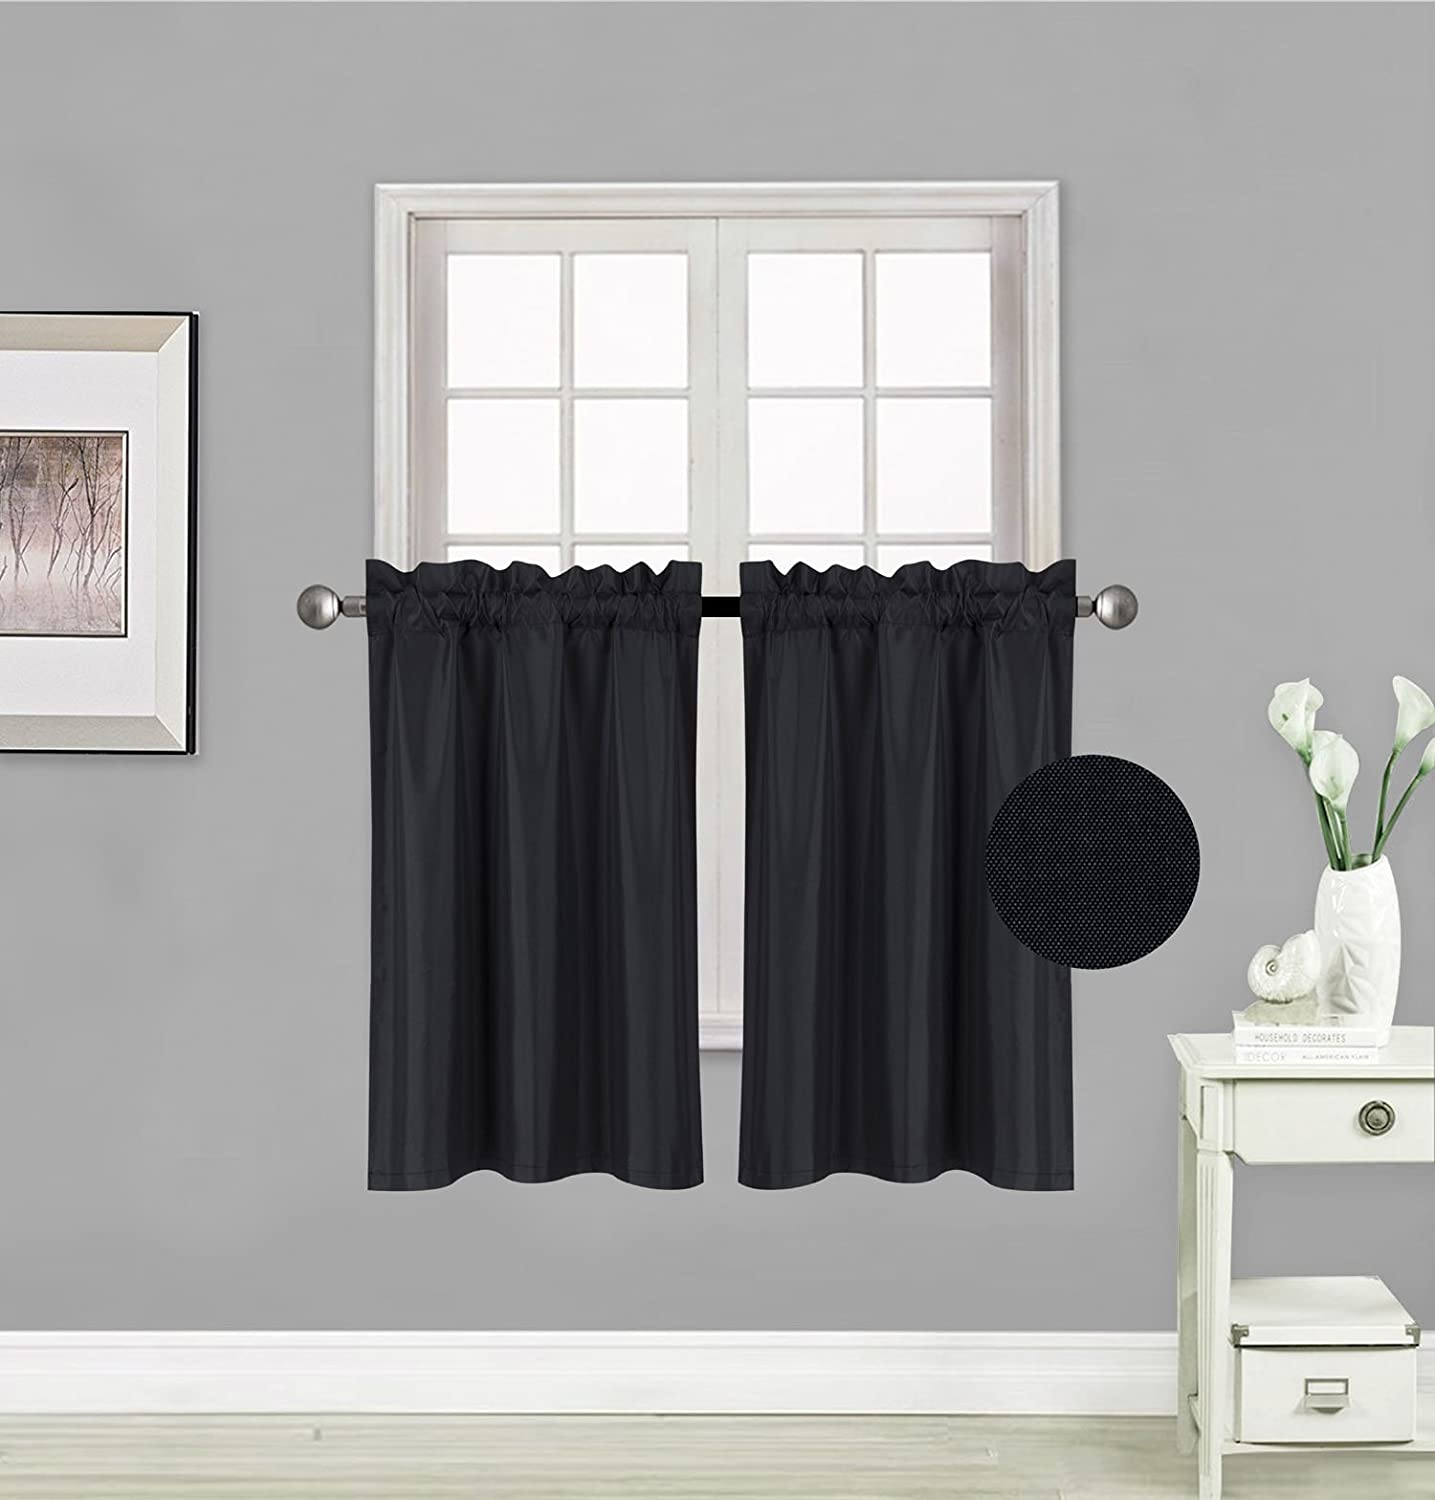 "Elegant Home 2 Panels Tiers Small Window Treatment Curtain Insulated Blackout Drape Short Panel 30""W X 36""L Each for Kitchen Bathroom or ANY Small Window # R5 (Black)"